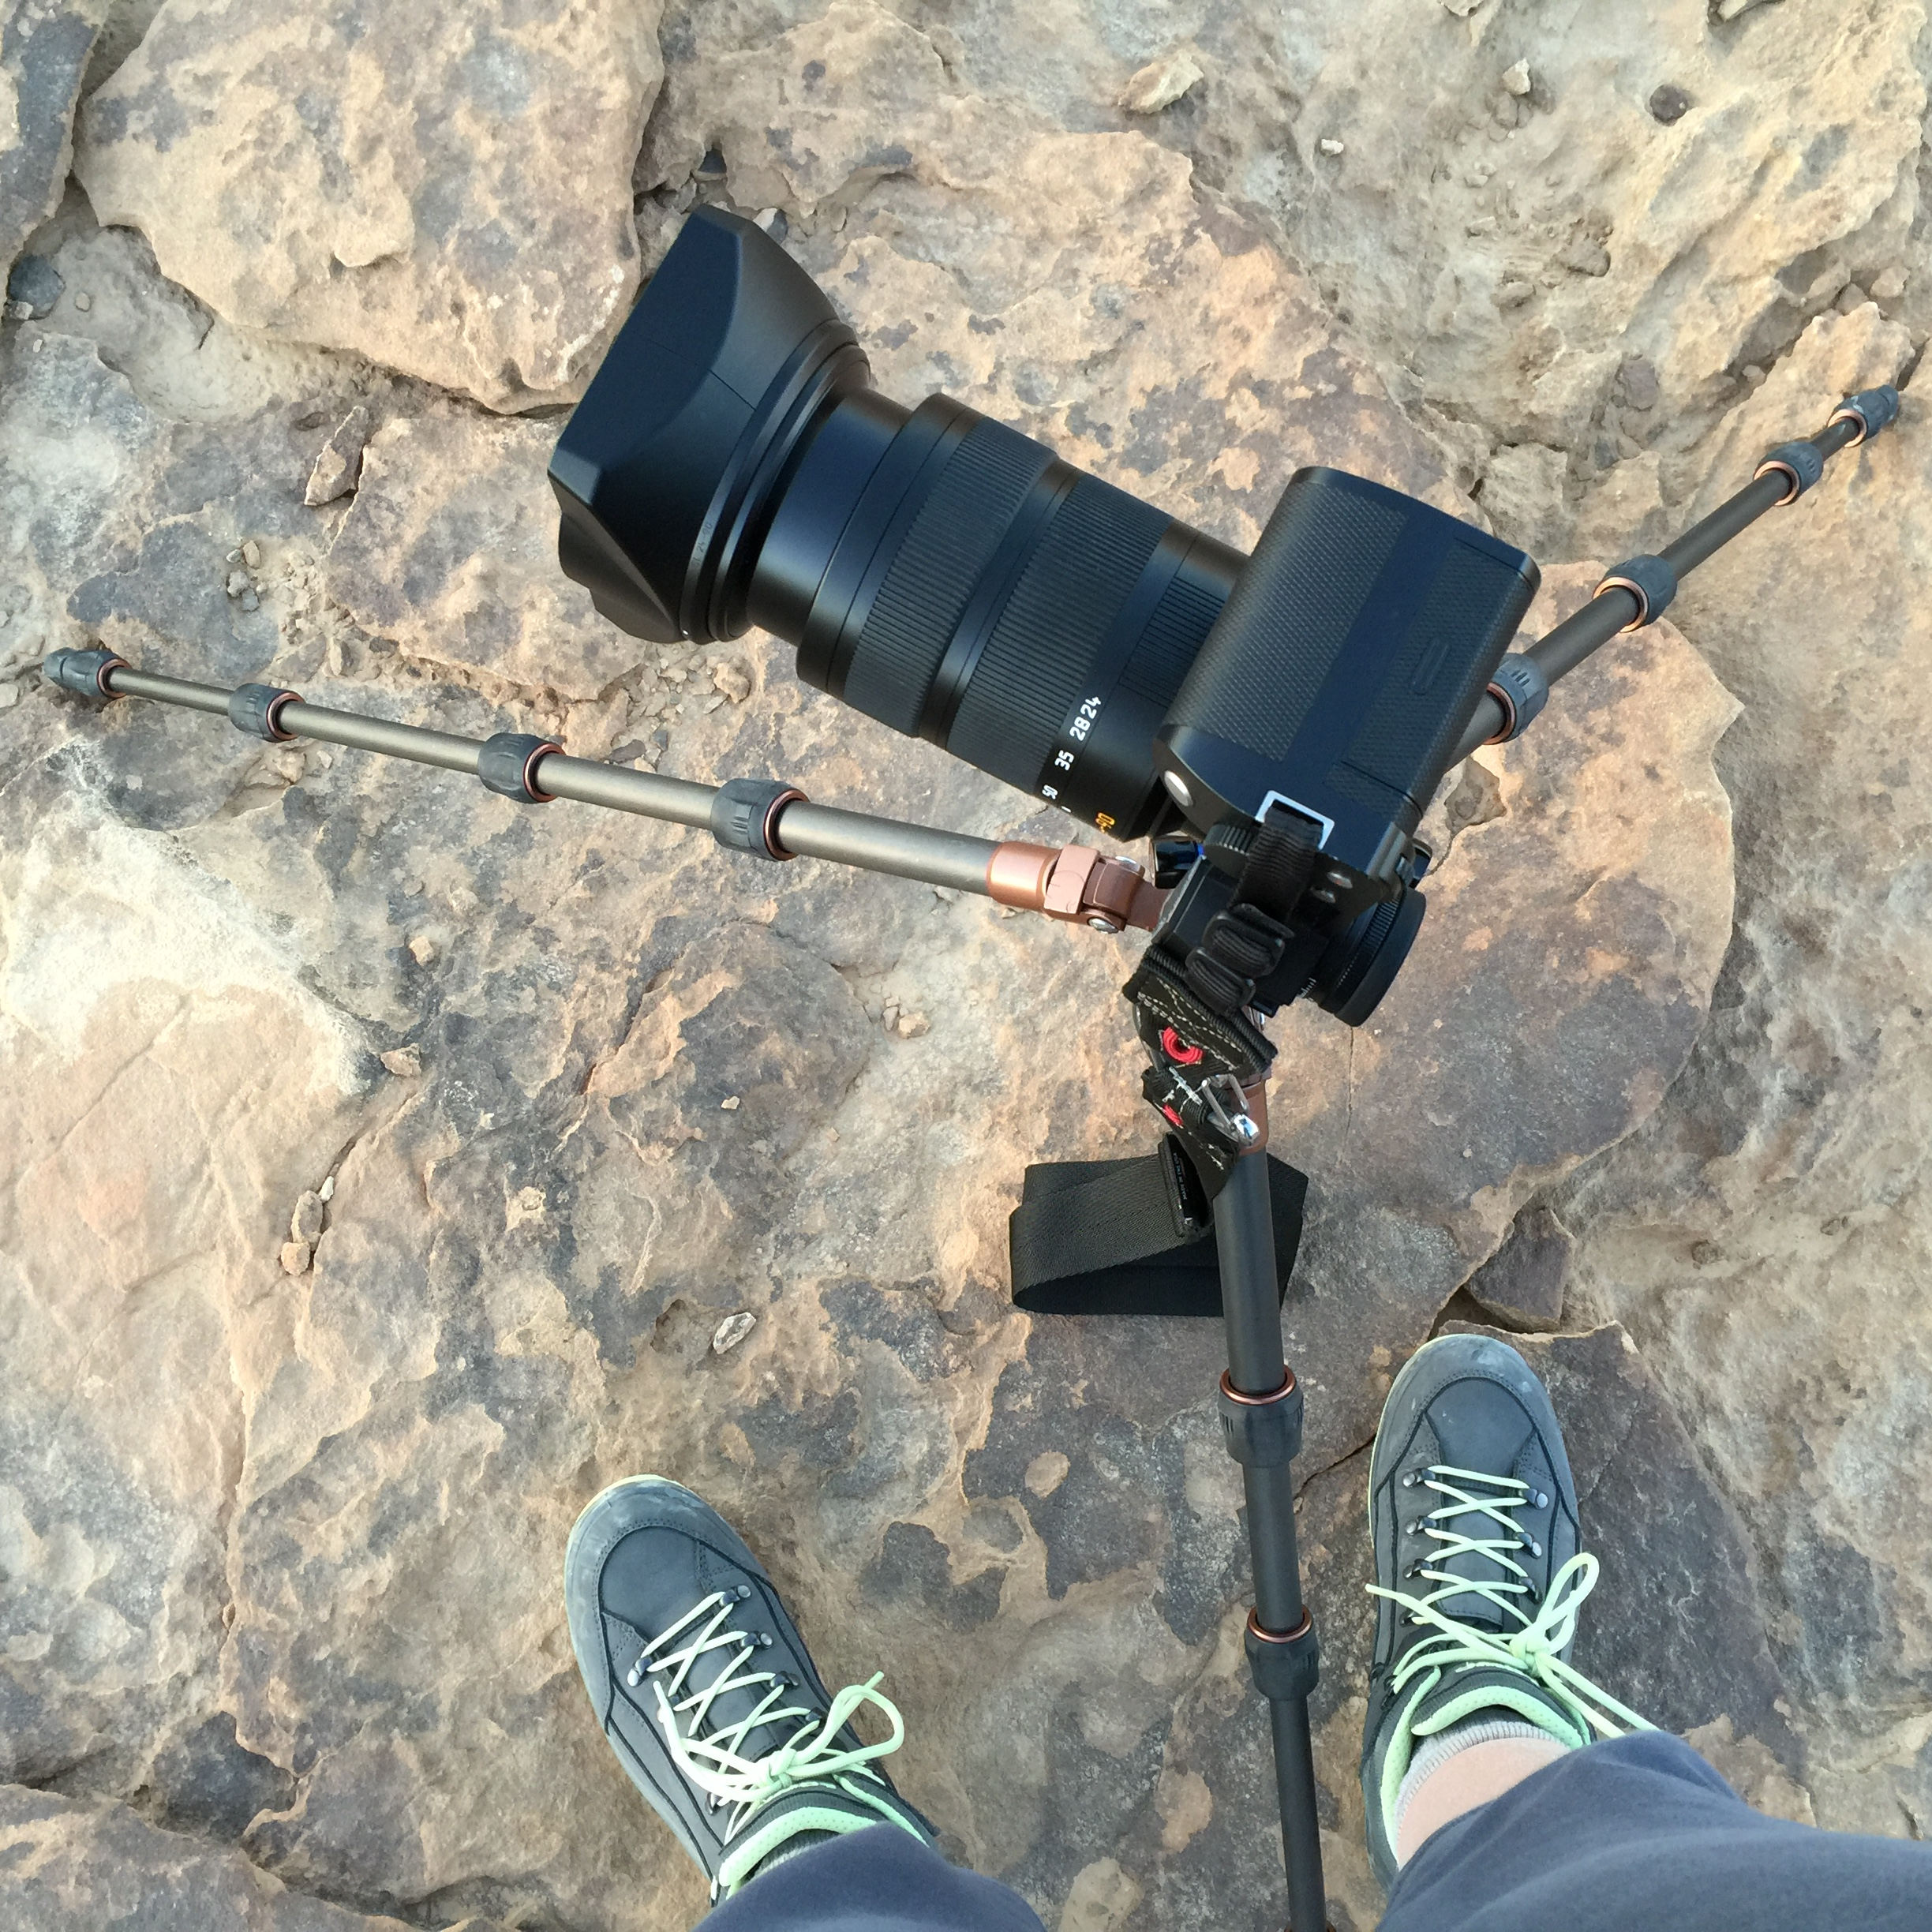 The Leica SL with the Leica 24-90mm lens on a 3 Legged Things tripod in Jordan. This setup was for a panorama shot of the sun setting over the Wadi Rum desert.